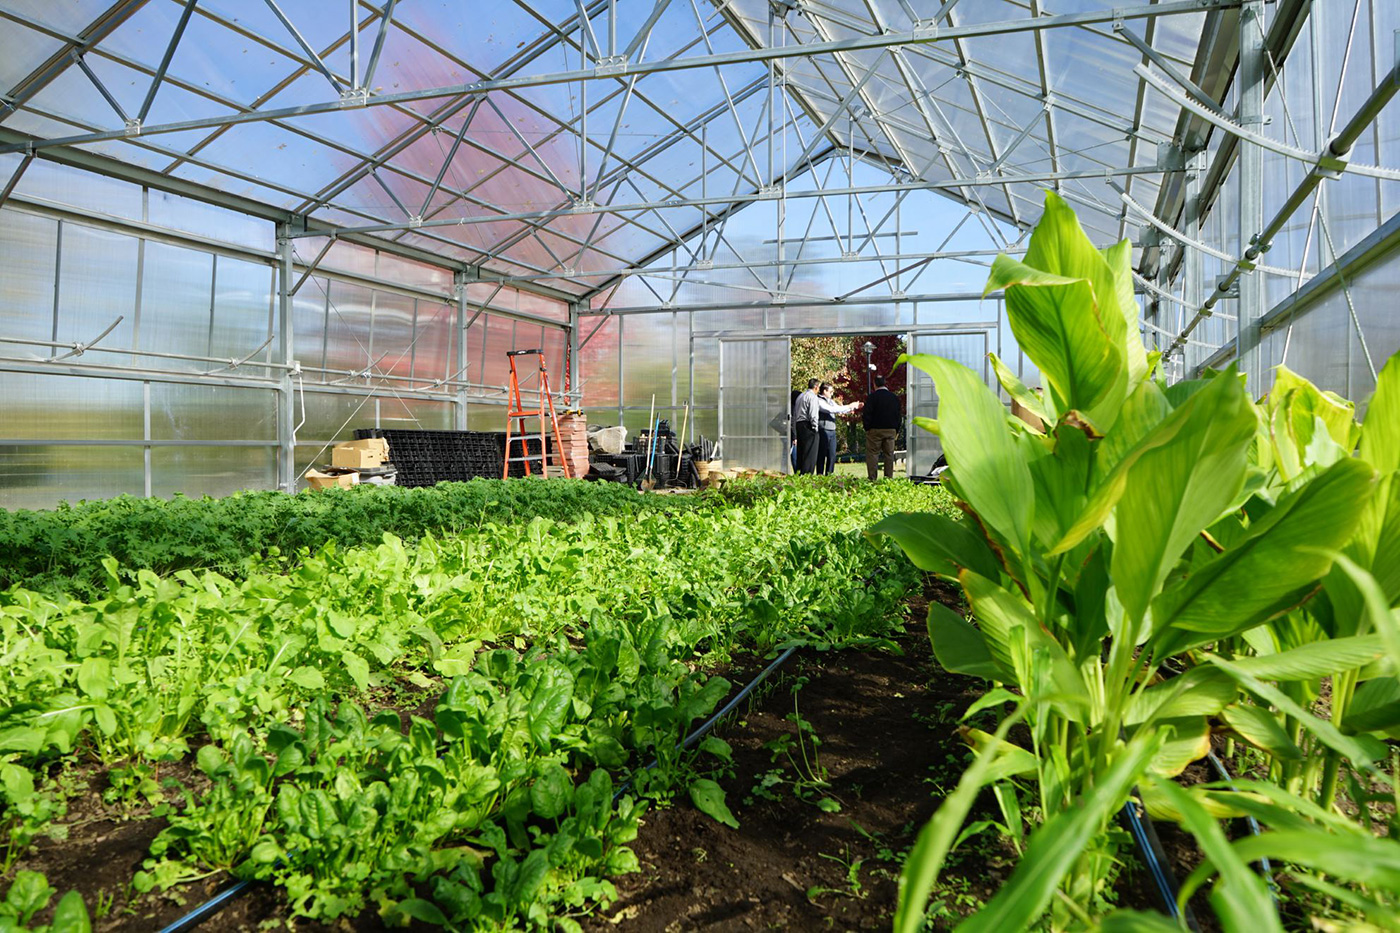 The inside of a greenhouse. UMass Lowell's Office of Sustainability partners with Mill City Grows, a Lowell-based urban food access nonprofit, to develop a robust Urban Agriculture Program.  This new and innovative program and partnership between UMass Lowell and Mill City Grows began in October 2016. It fosters food justice in Lowell by improving physical health, economic independence and environmental sustainability through increased access to land, locally-grown food and education.